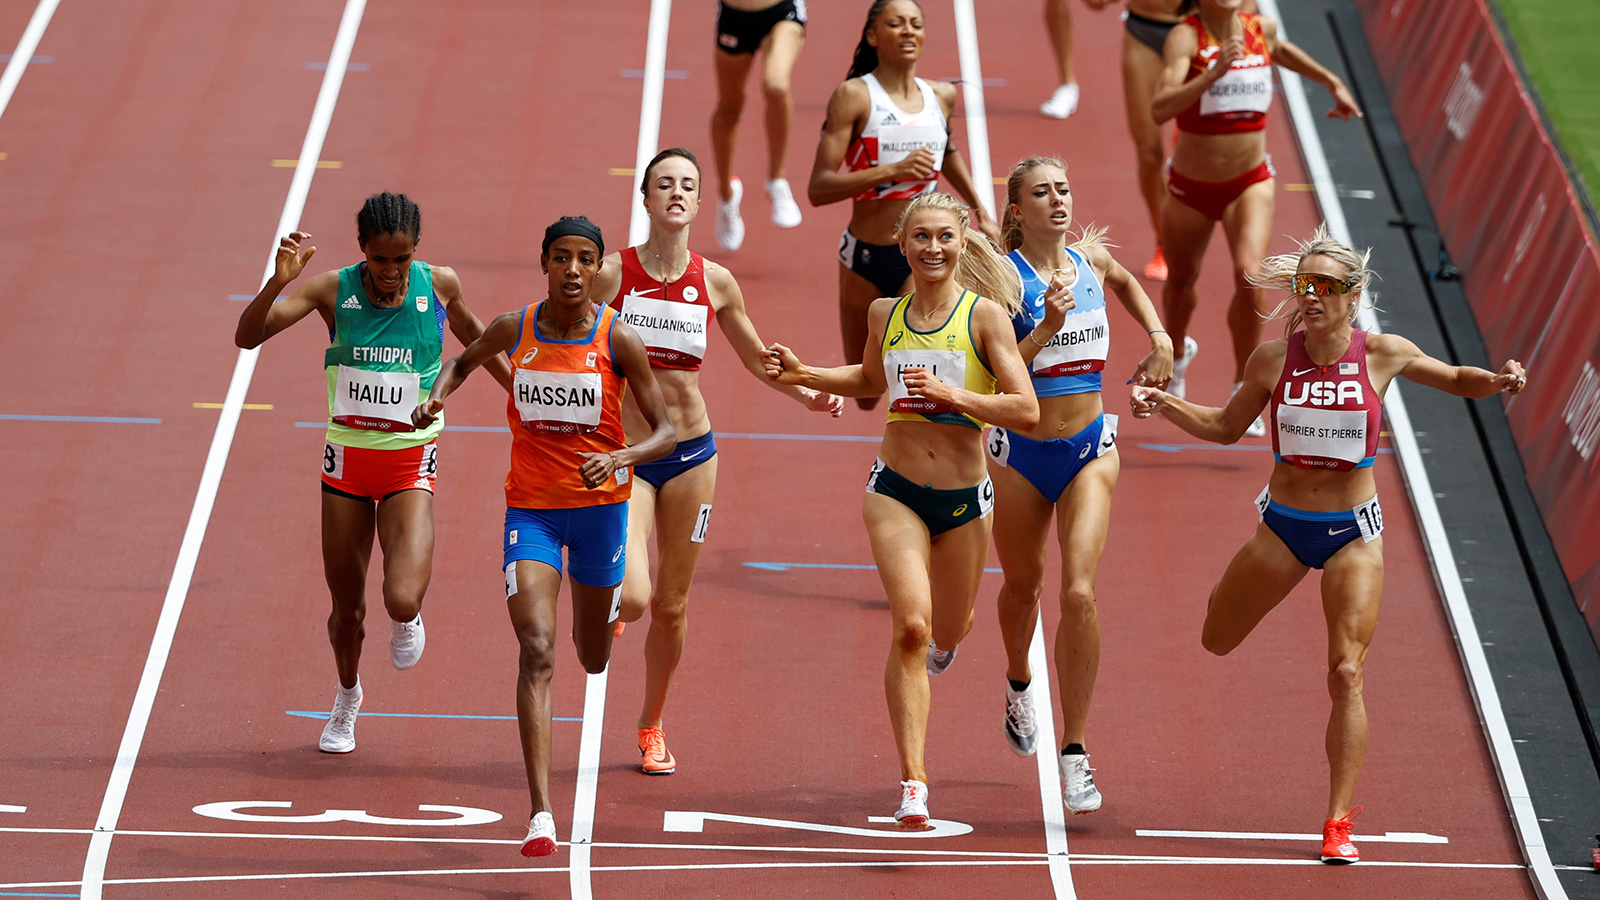 Sifan Hassan crosses the line to finish firstduring a 1500 meter heat on Monday.